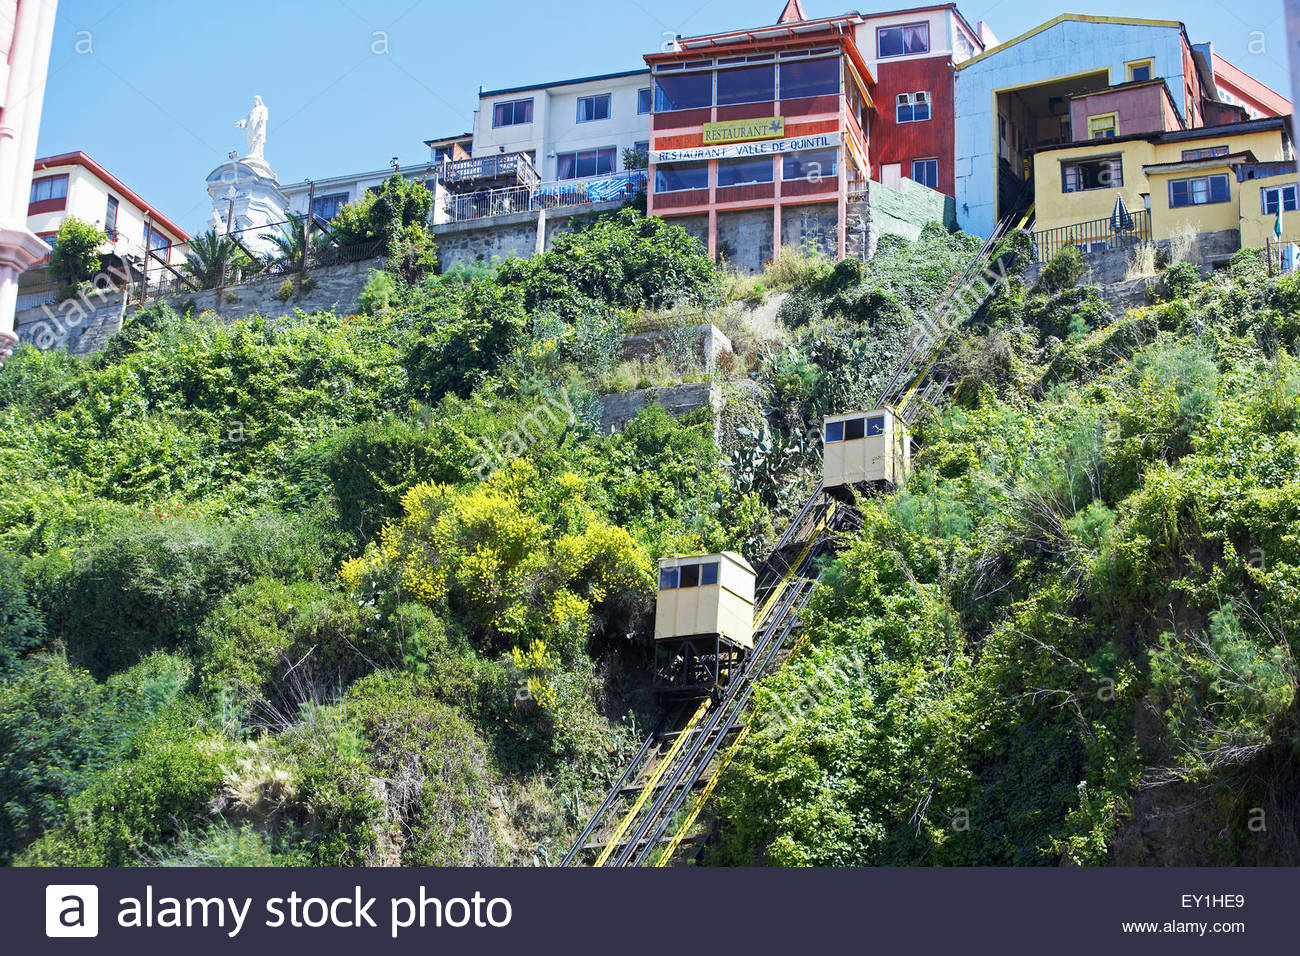 Yellow funicular, Valparaiso, Chile, South America - Stock Image